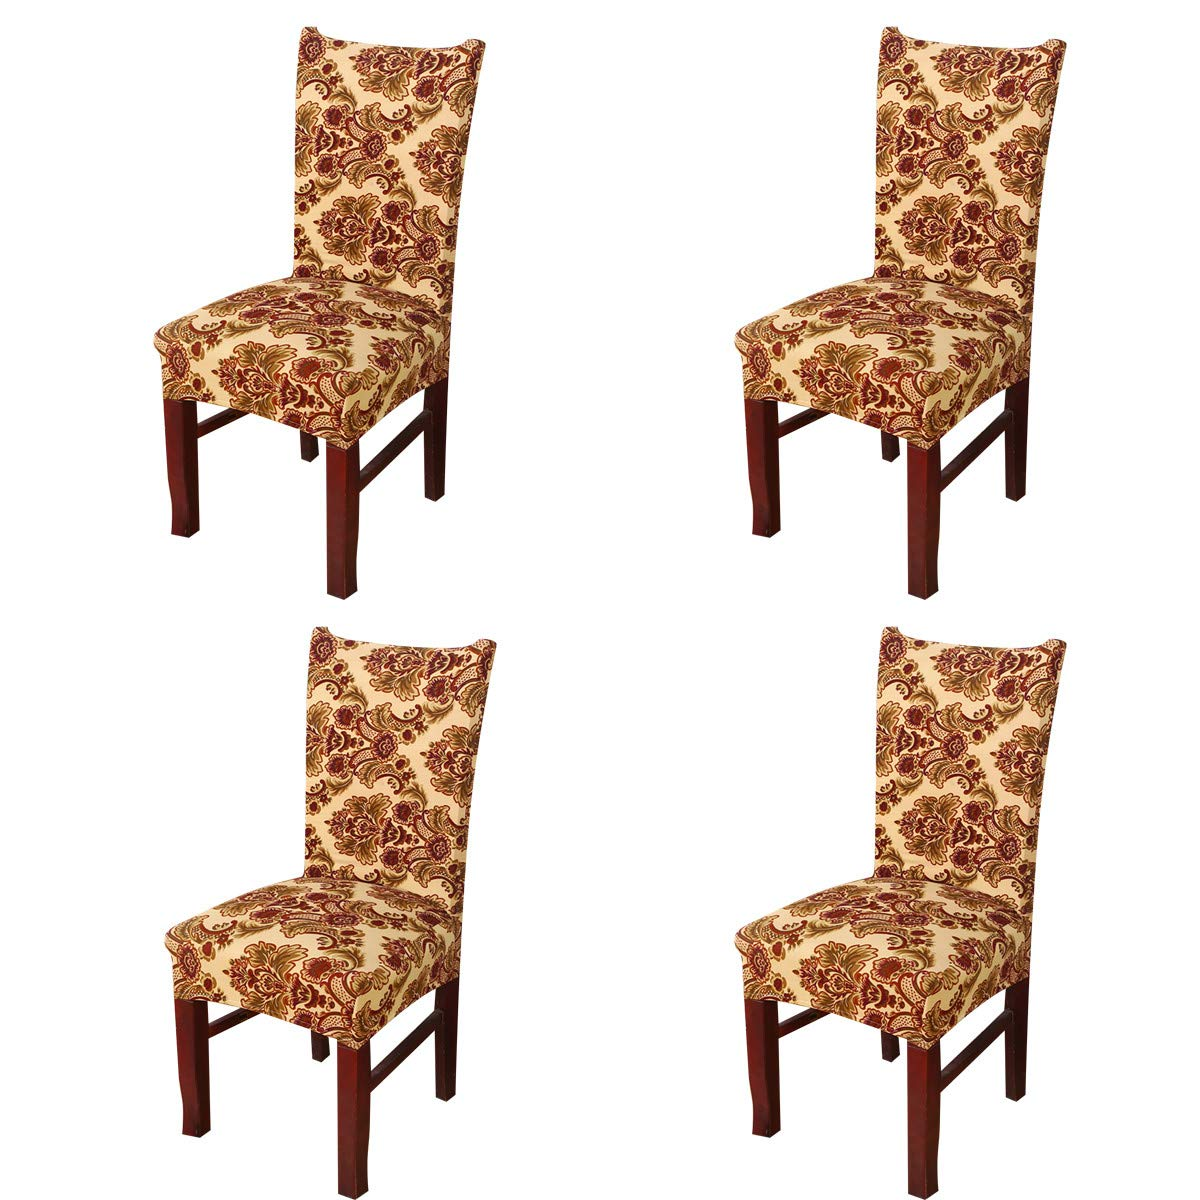 Amazoncom Vonty Vintage Floral Print Dining Chair Covers Stretch